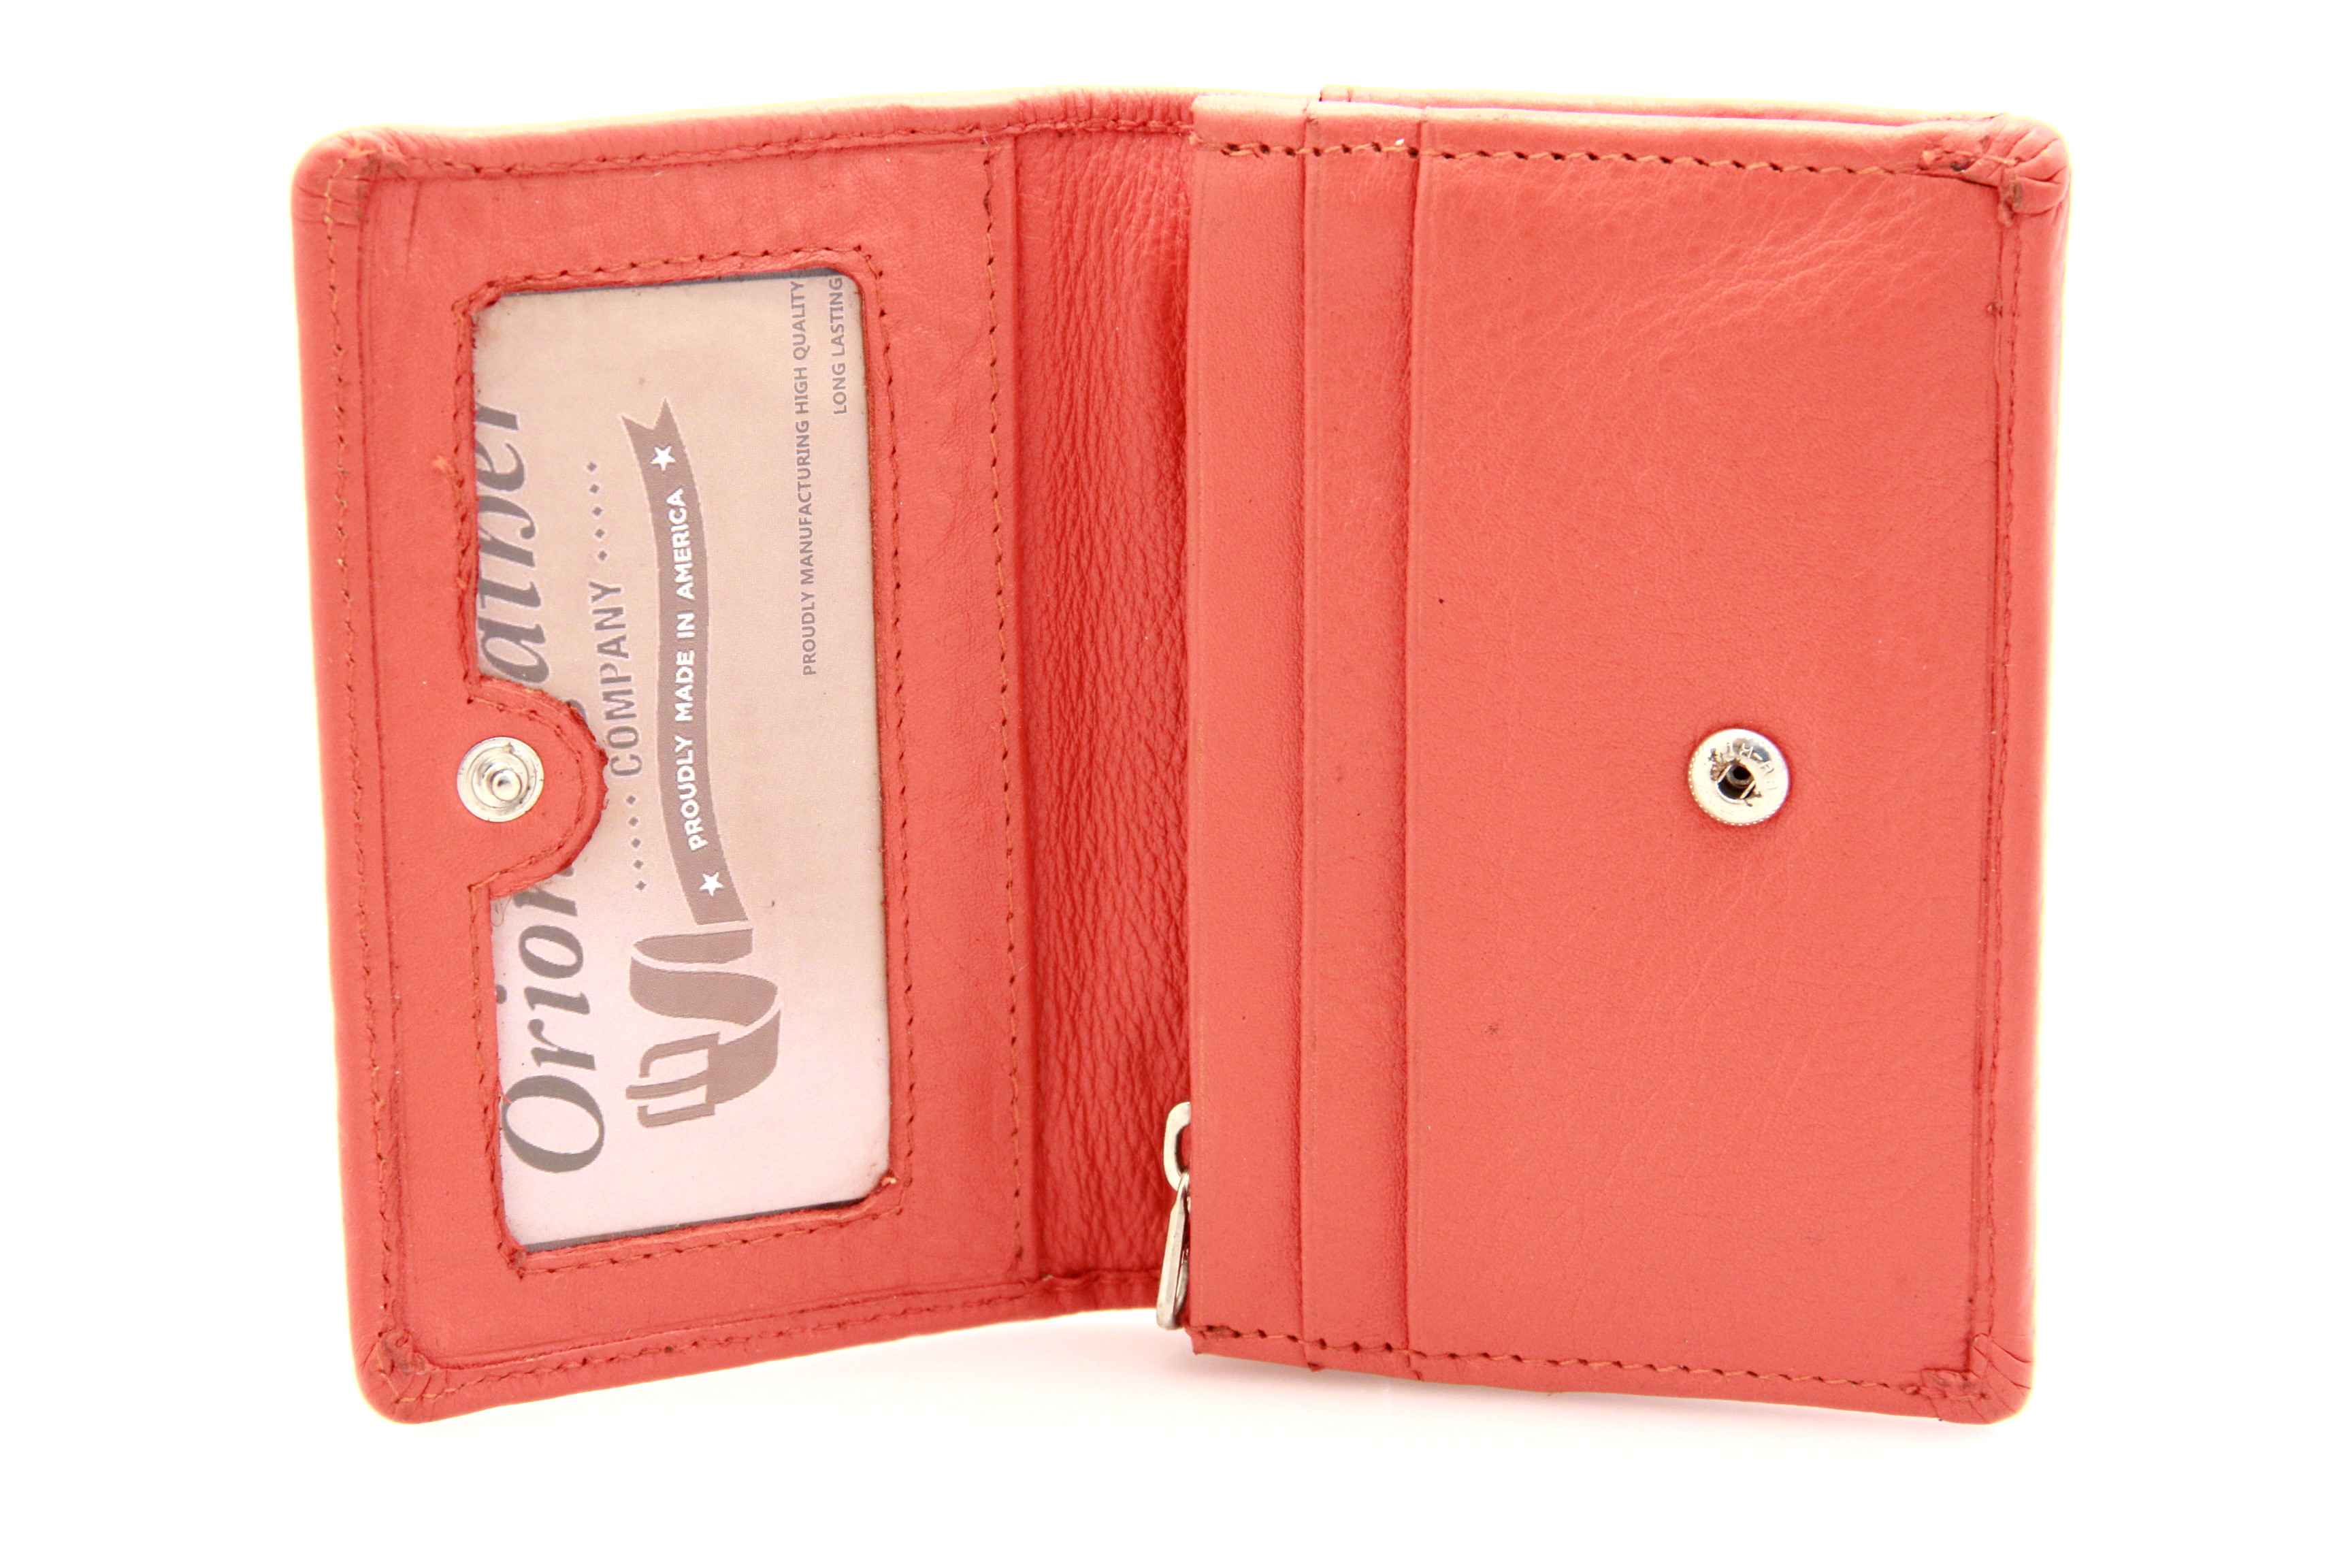 Paul Taylor Womens Wallet Small Card Case Change Purse Button Snap